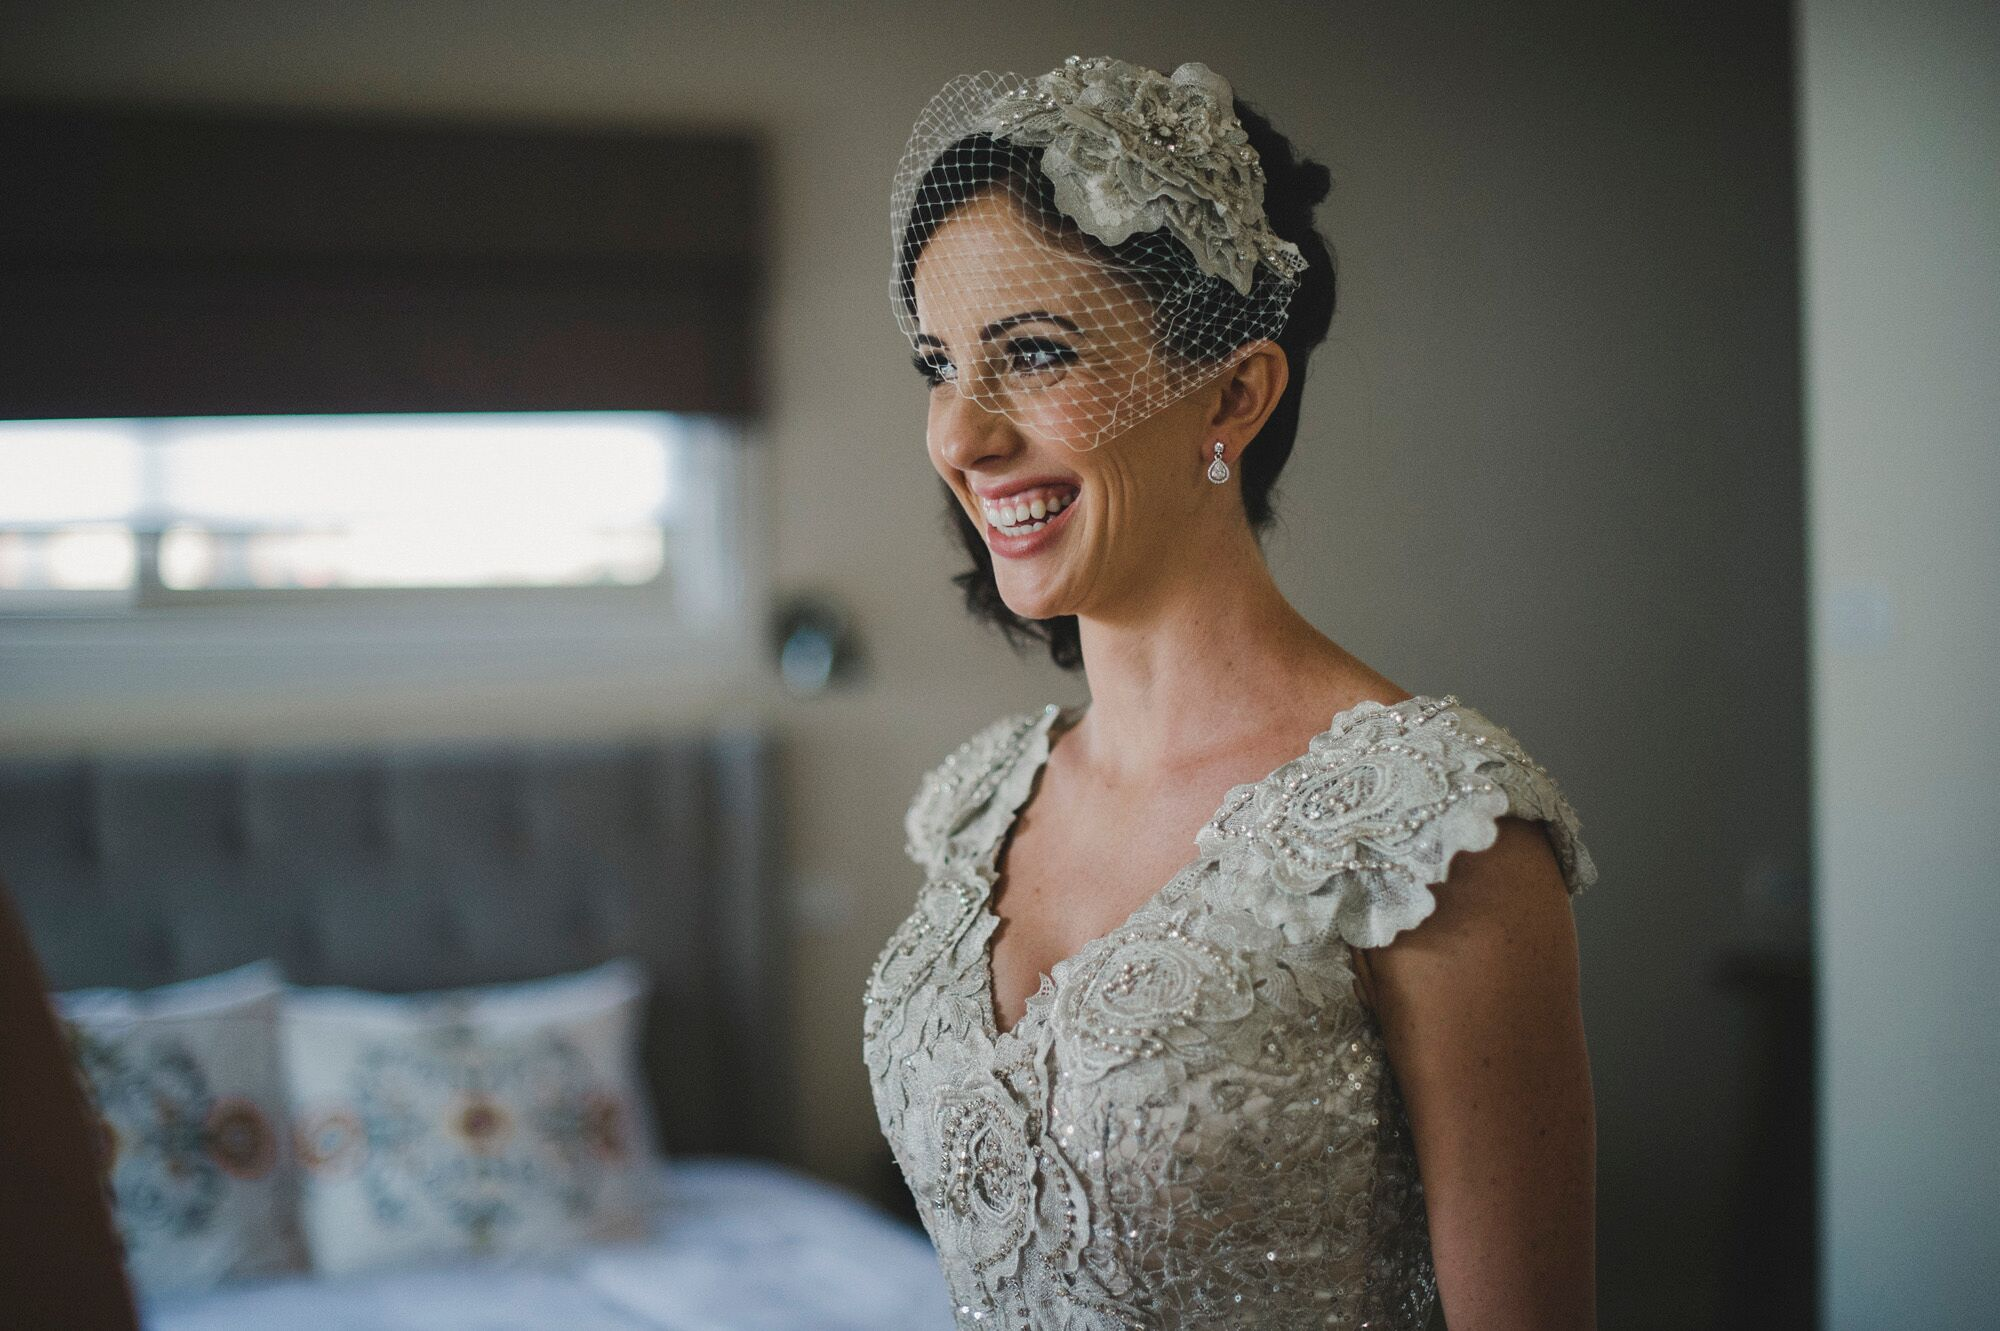 Bridal Gowns Queanbeyan : Real weddings elyse and rob hercanberra